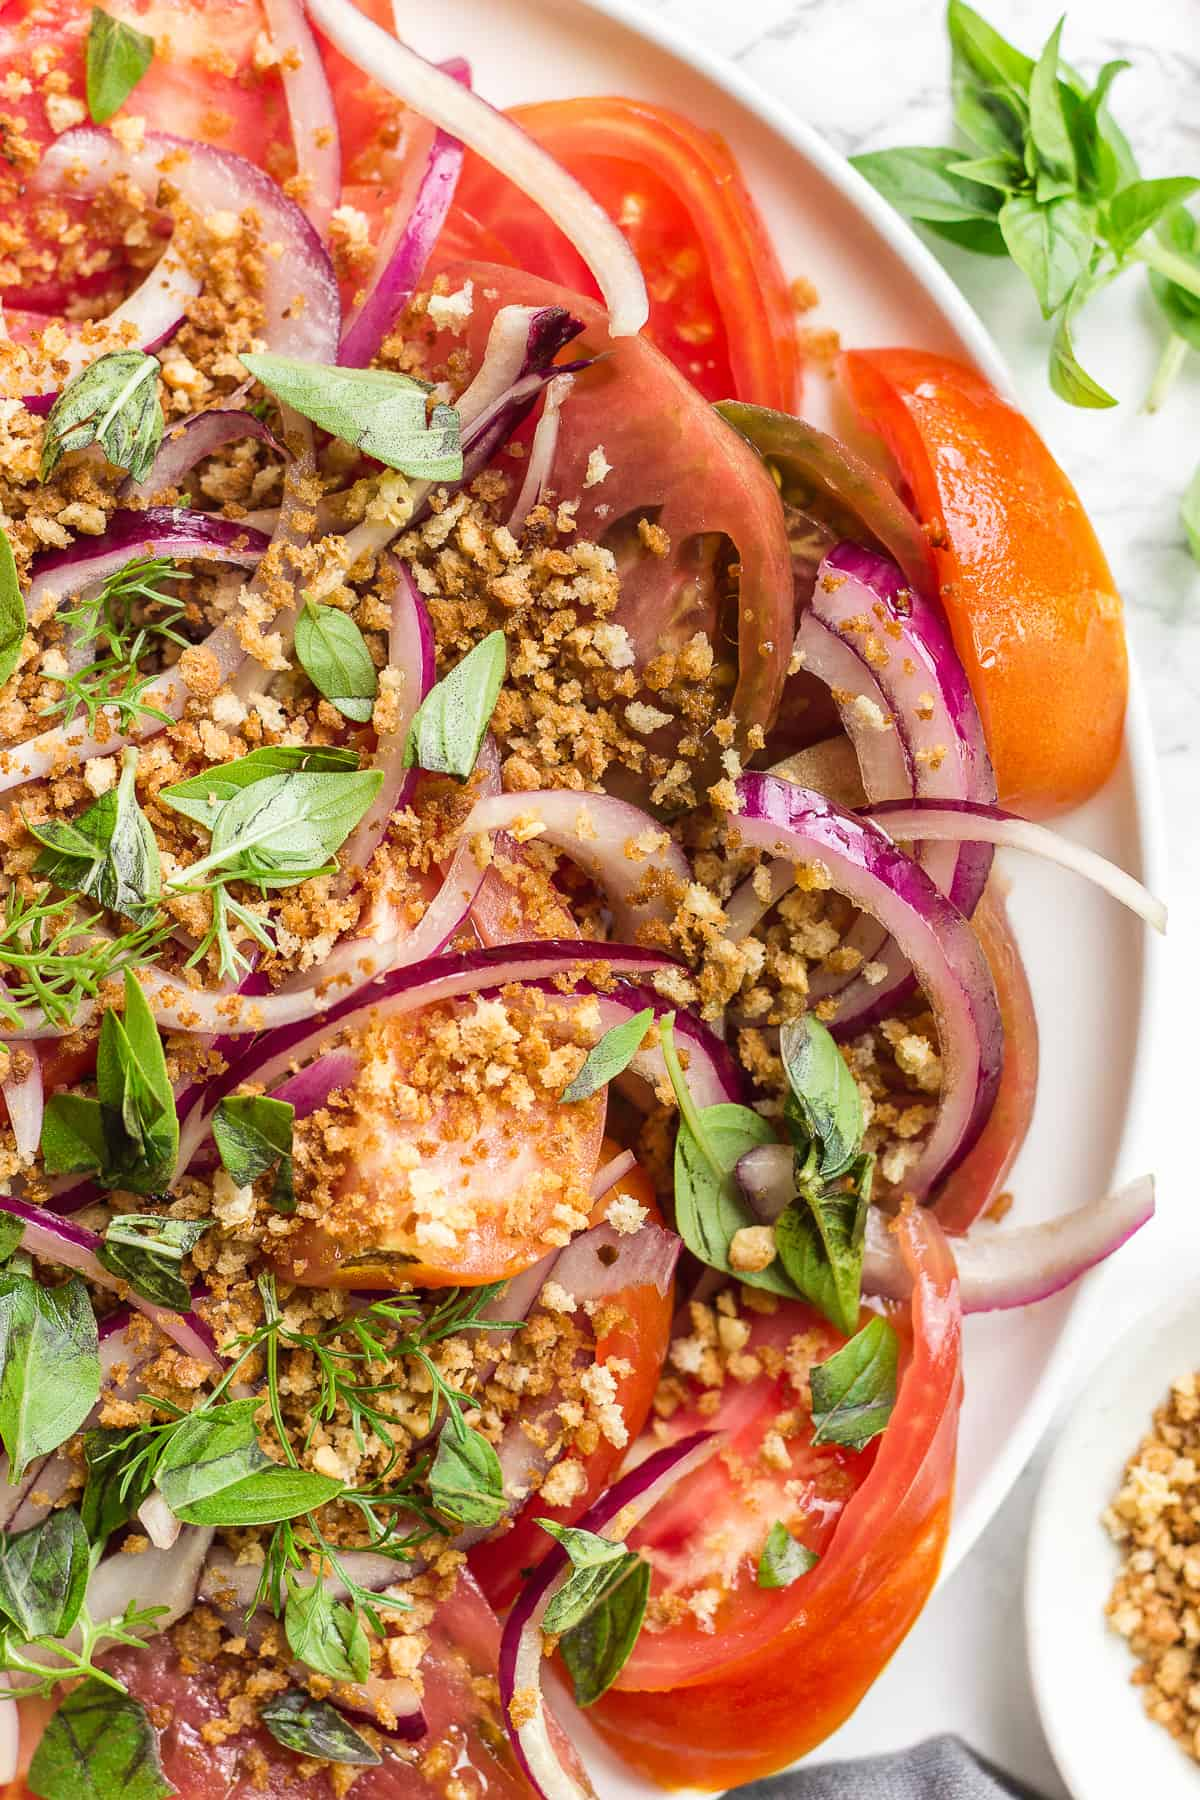 Healthy Heirloom Tomato Salad with crunchy garlicky topping